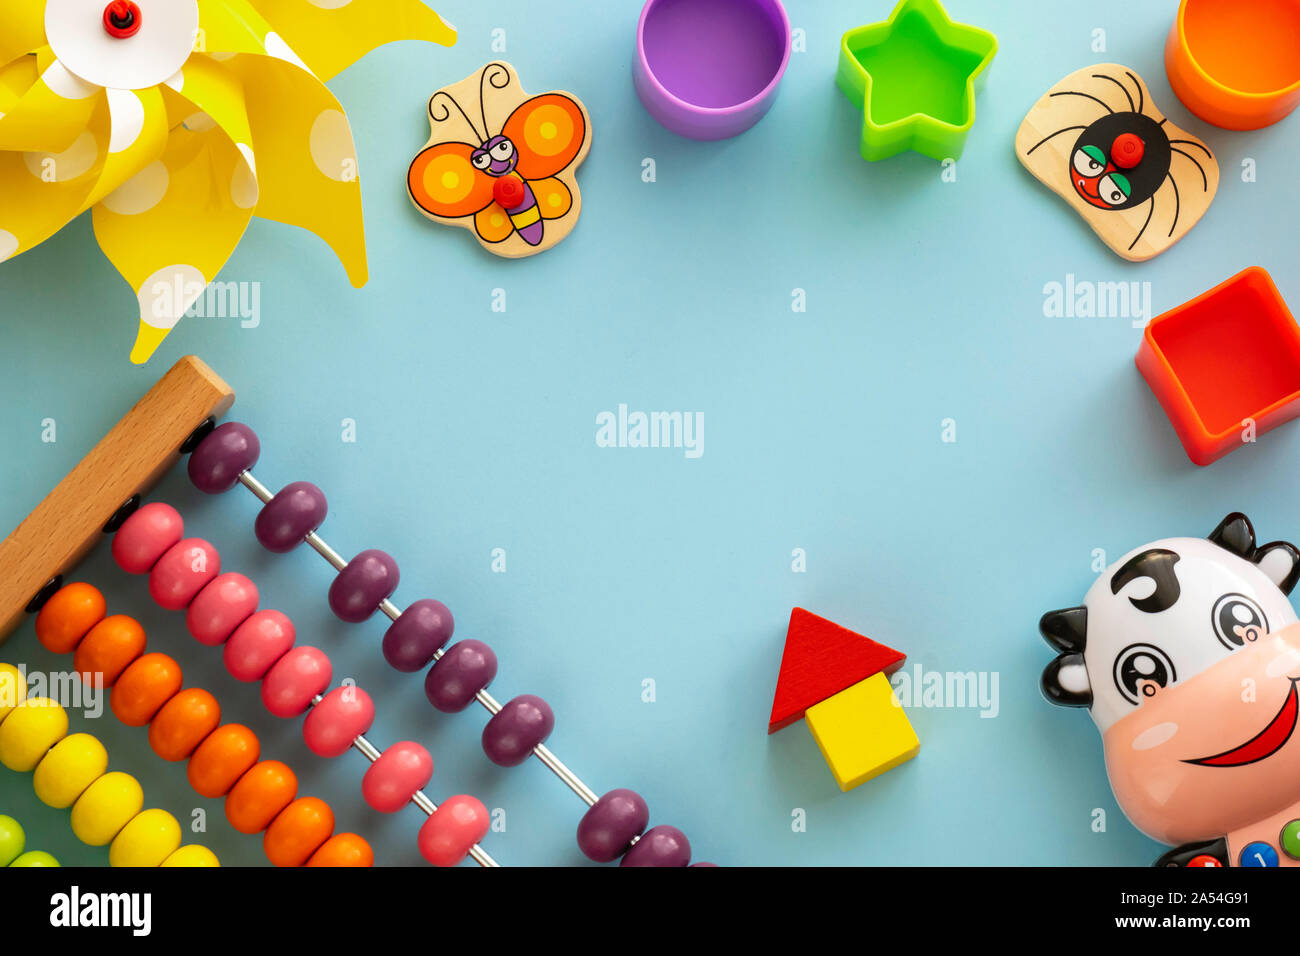 Top view on children's educational games, frame from kids toys on blue paper background. Сubes, stars, circles, cow, pinwheel, abacus, cute butterfly, spider. Flat lay, copy space.  Stock Photo